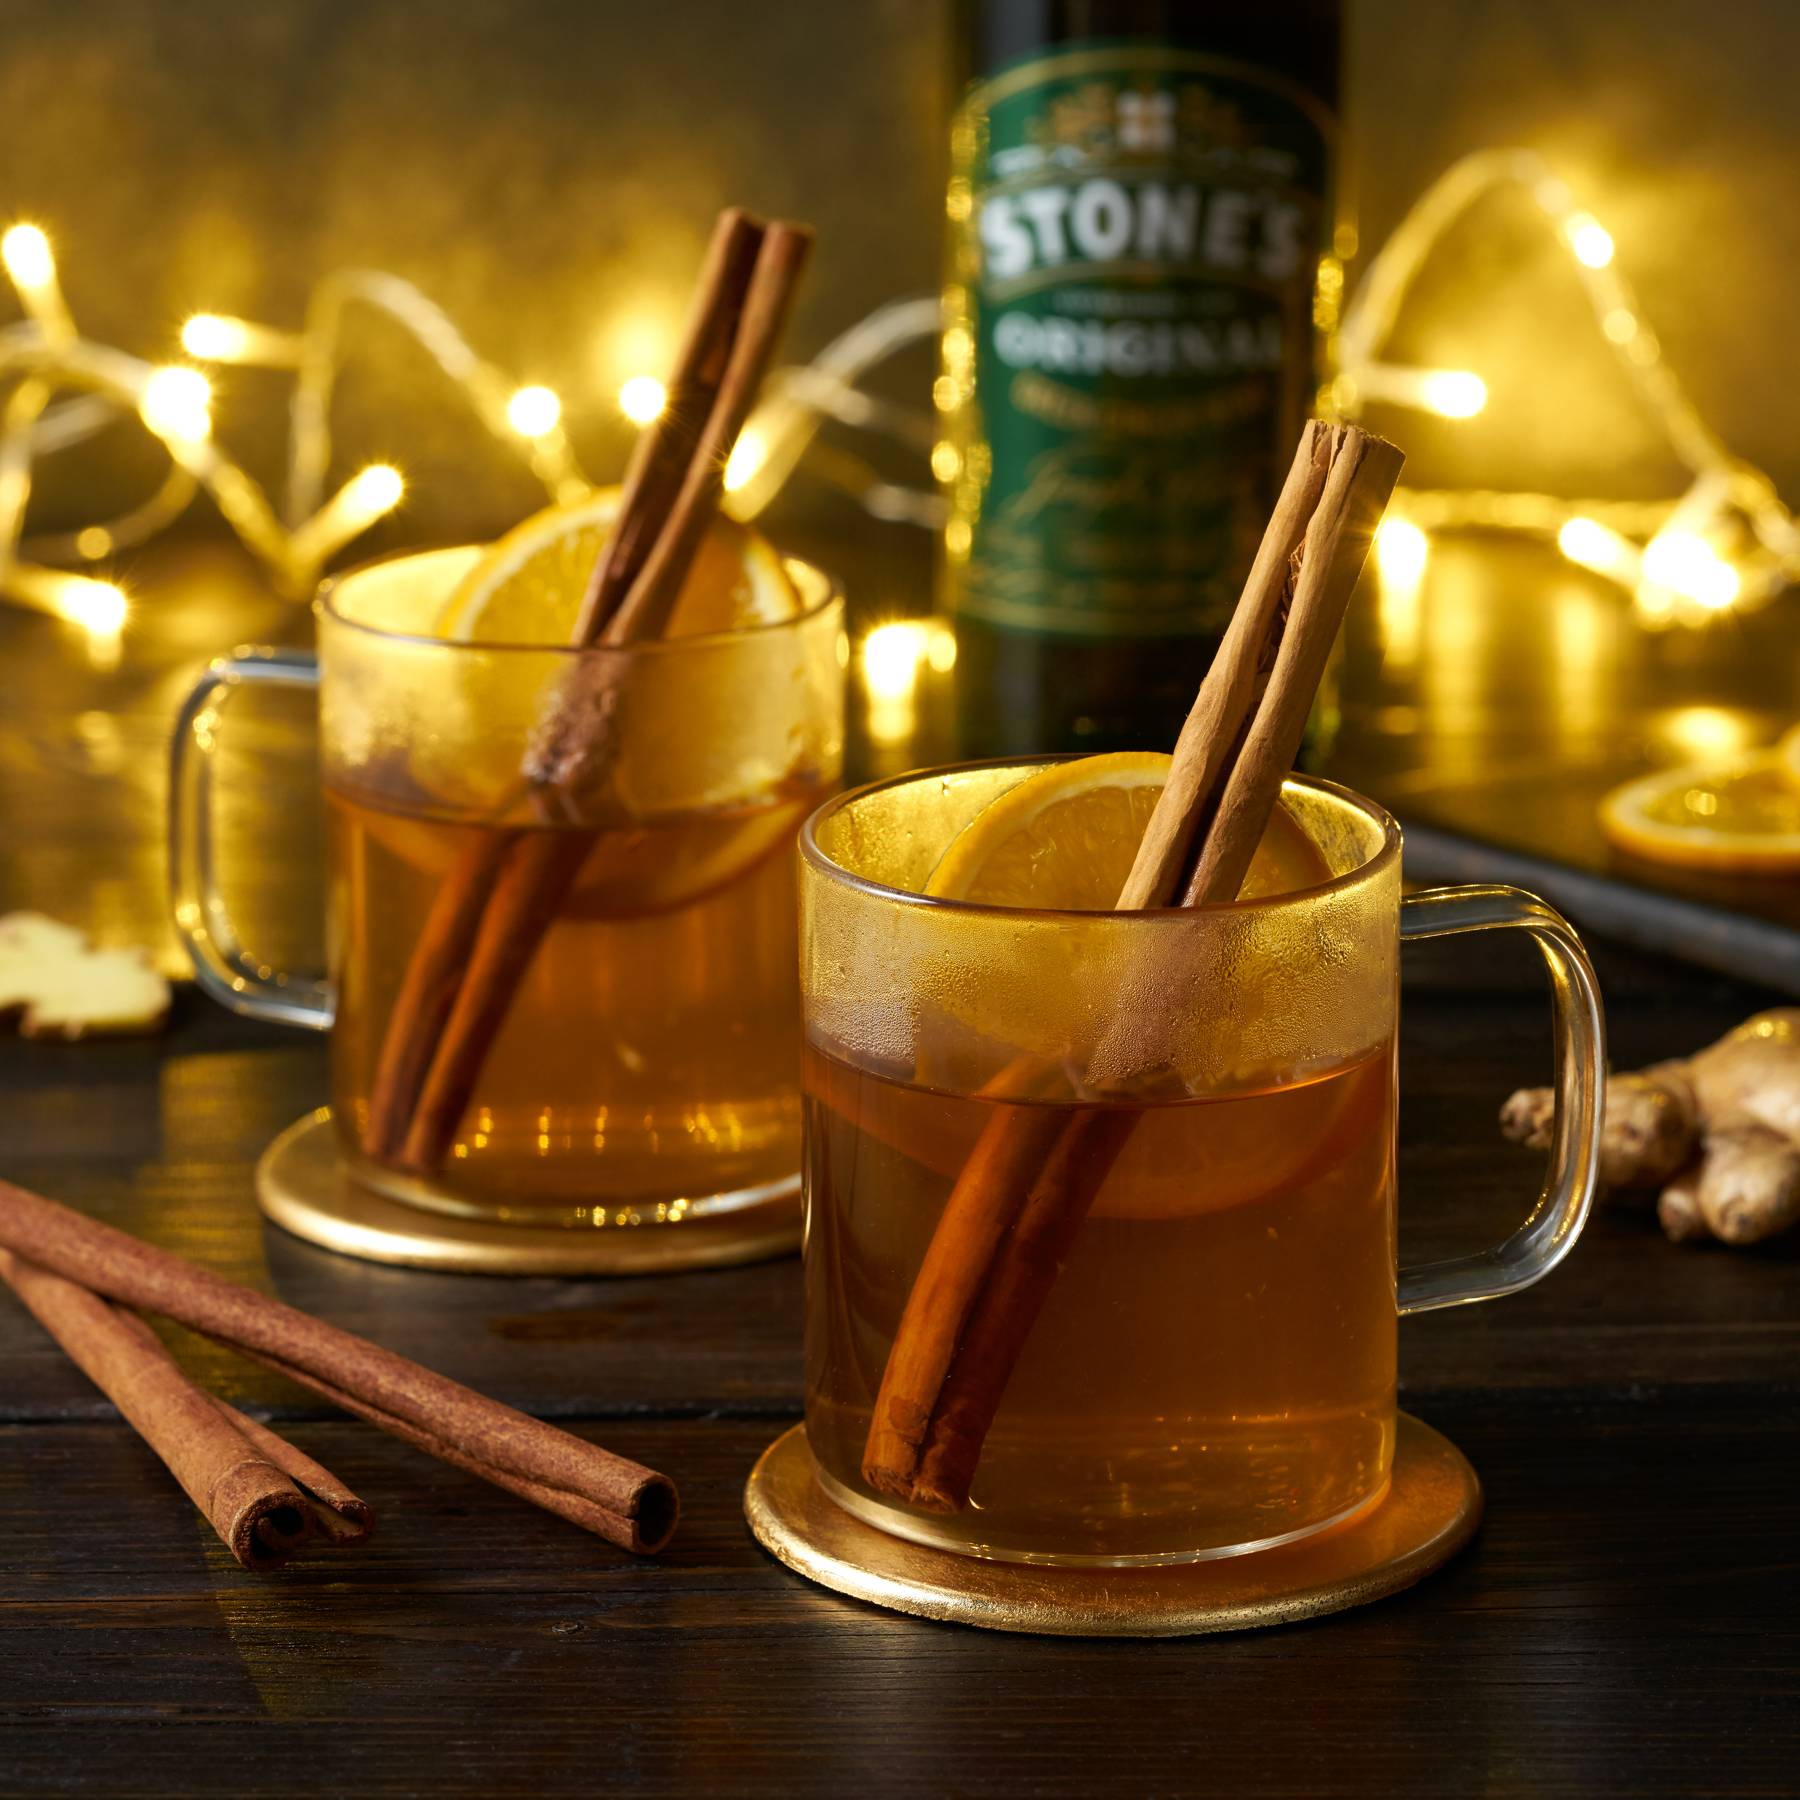 How to make a proper hot toddy